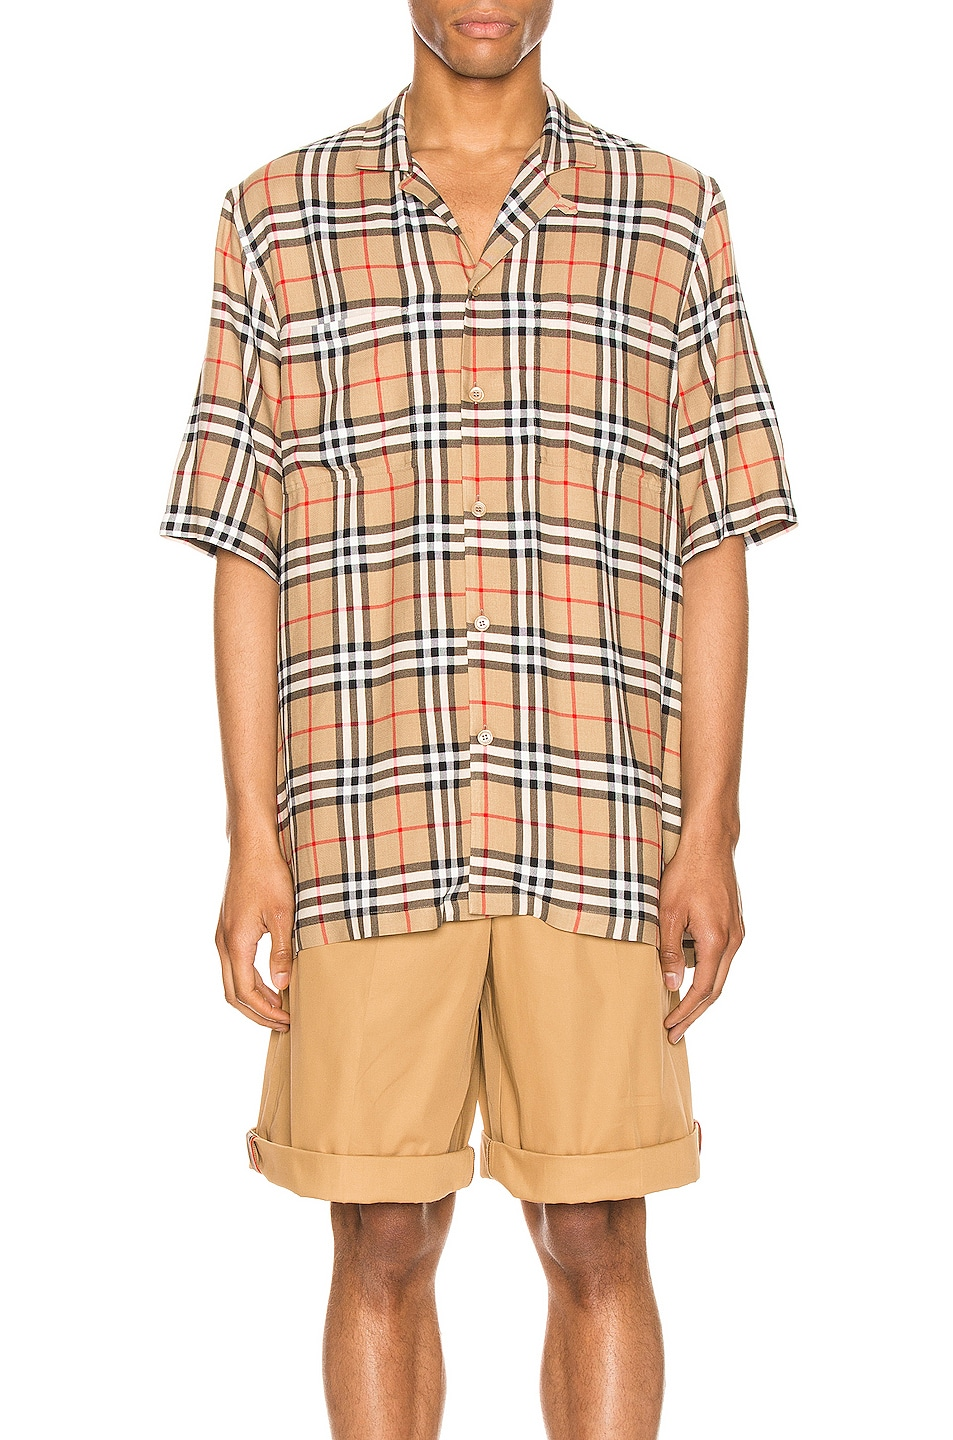 Image 1 of Burberry Raymouth Check Short Sleeve Shirt in Archive Beige IP Check